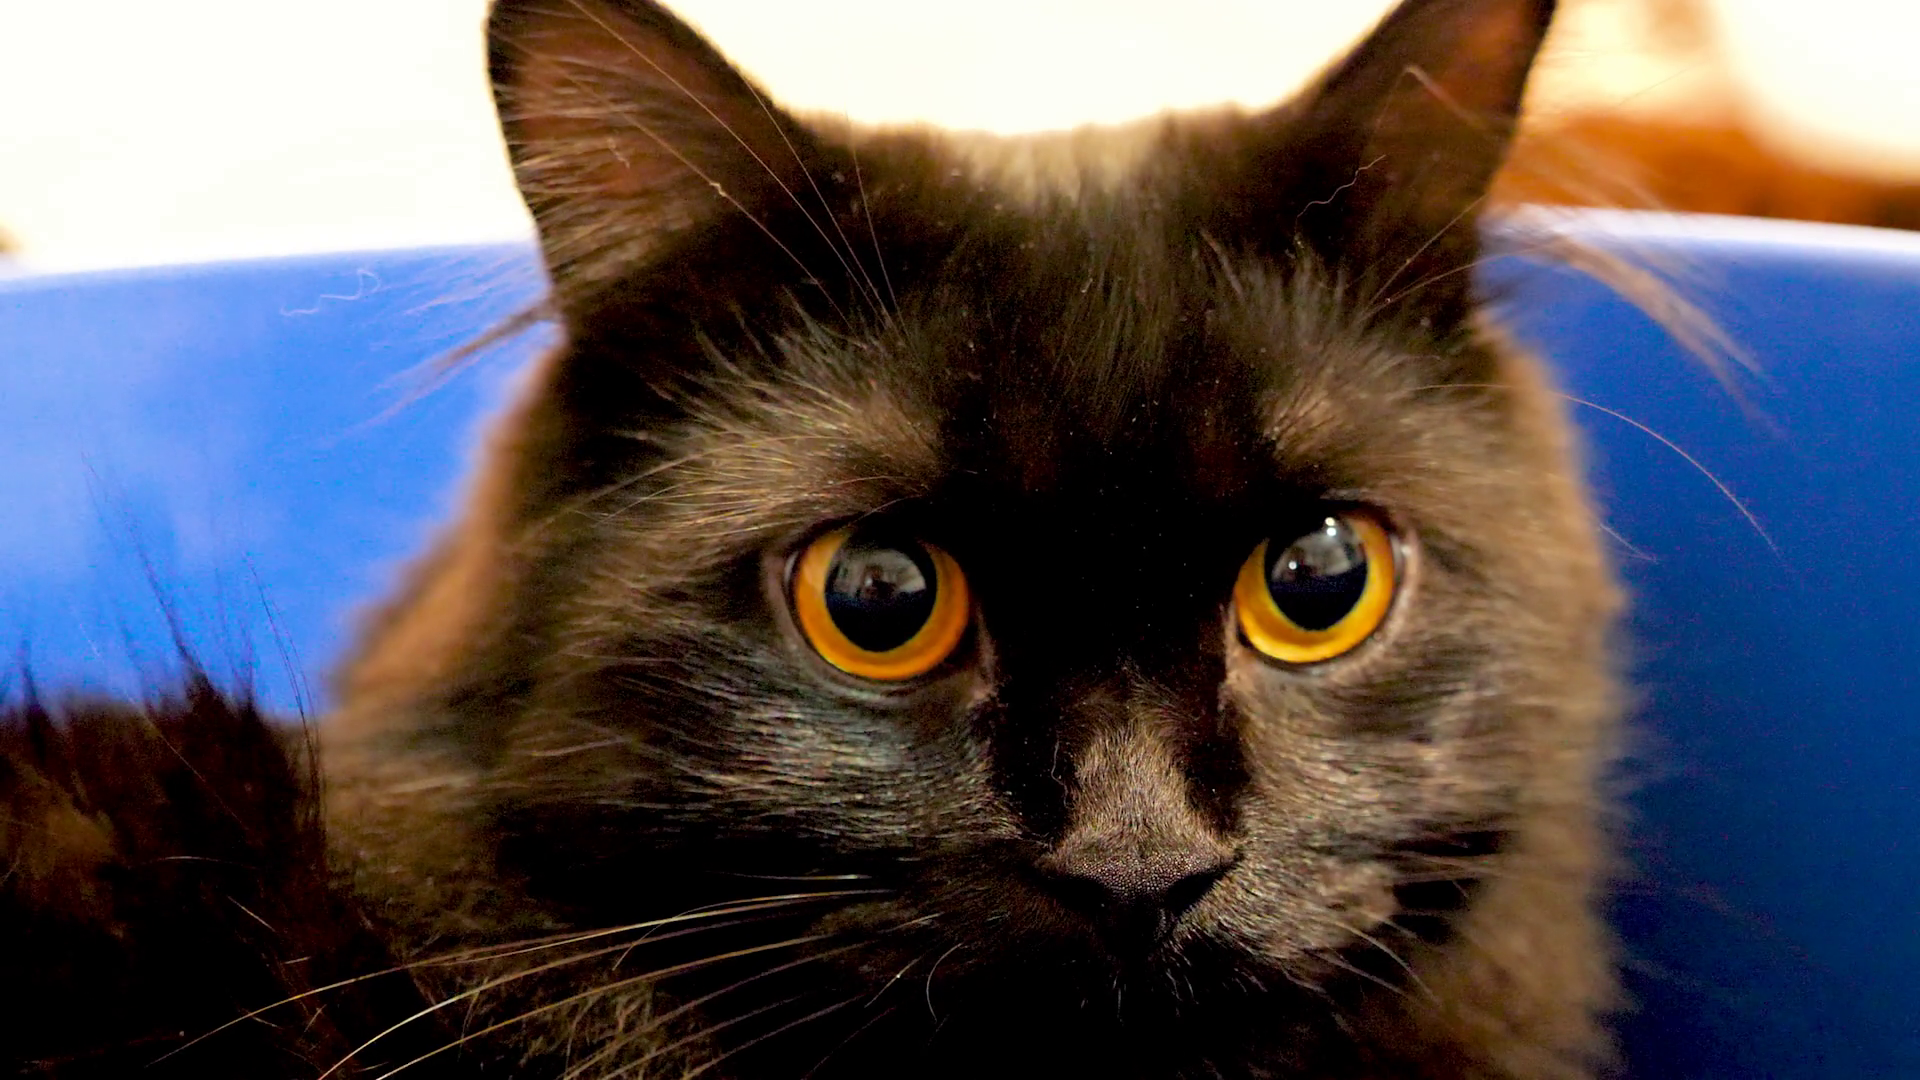 Portrait Of Beautiful Black Norwegian Forest Cat In Blue Bowl Looking At The Camera Then Away Animal Funny Videos Stock Video Footage Storyblocks